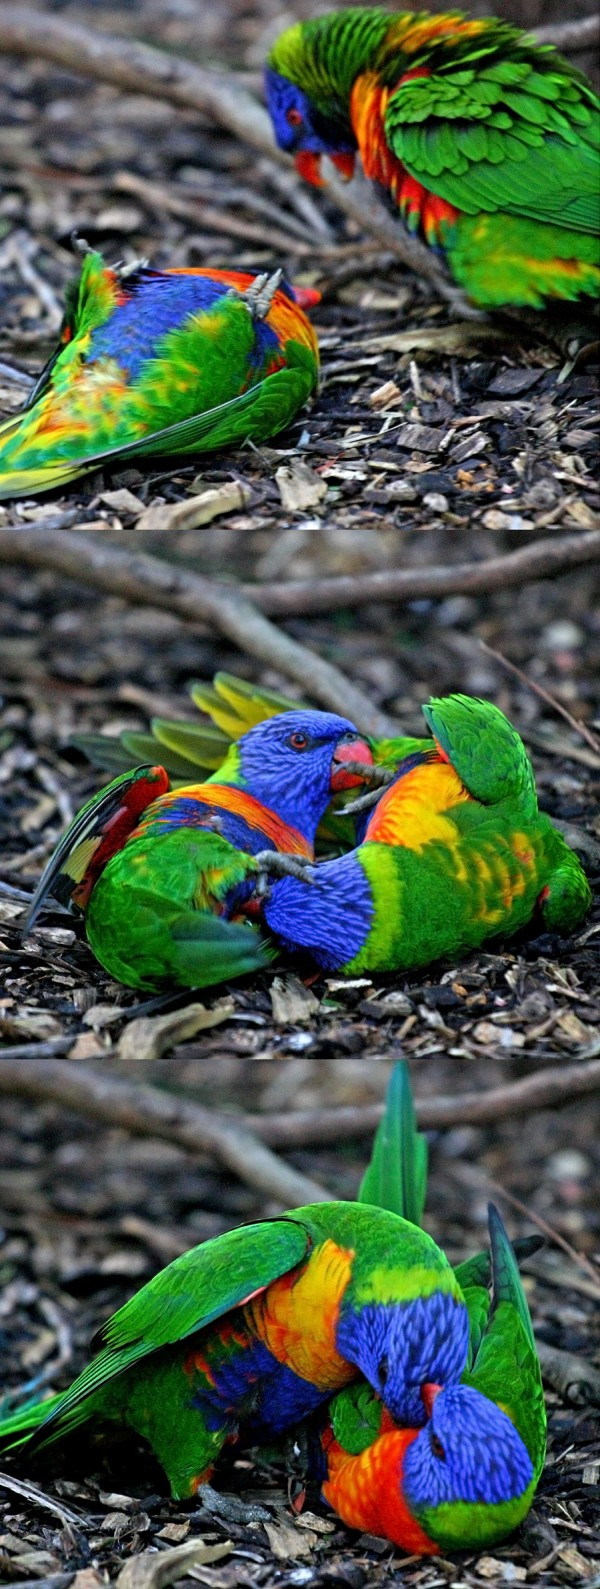 War of the parrots